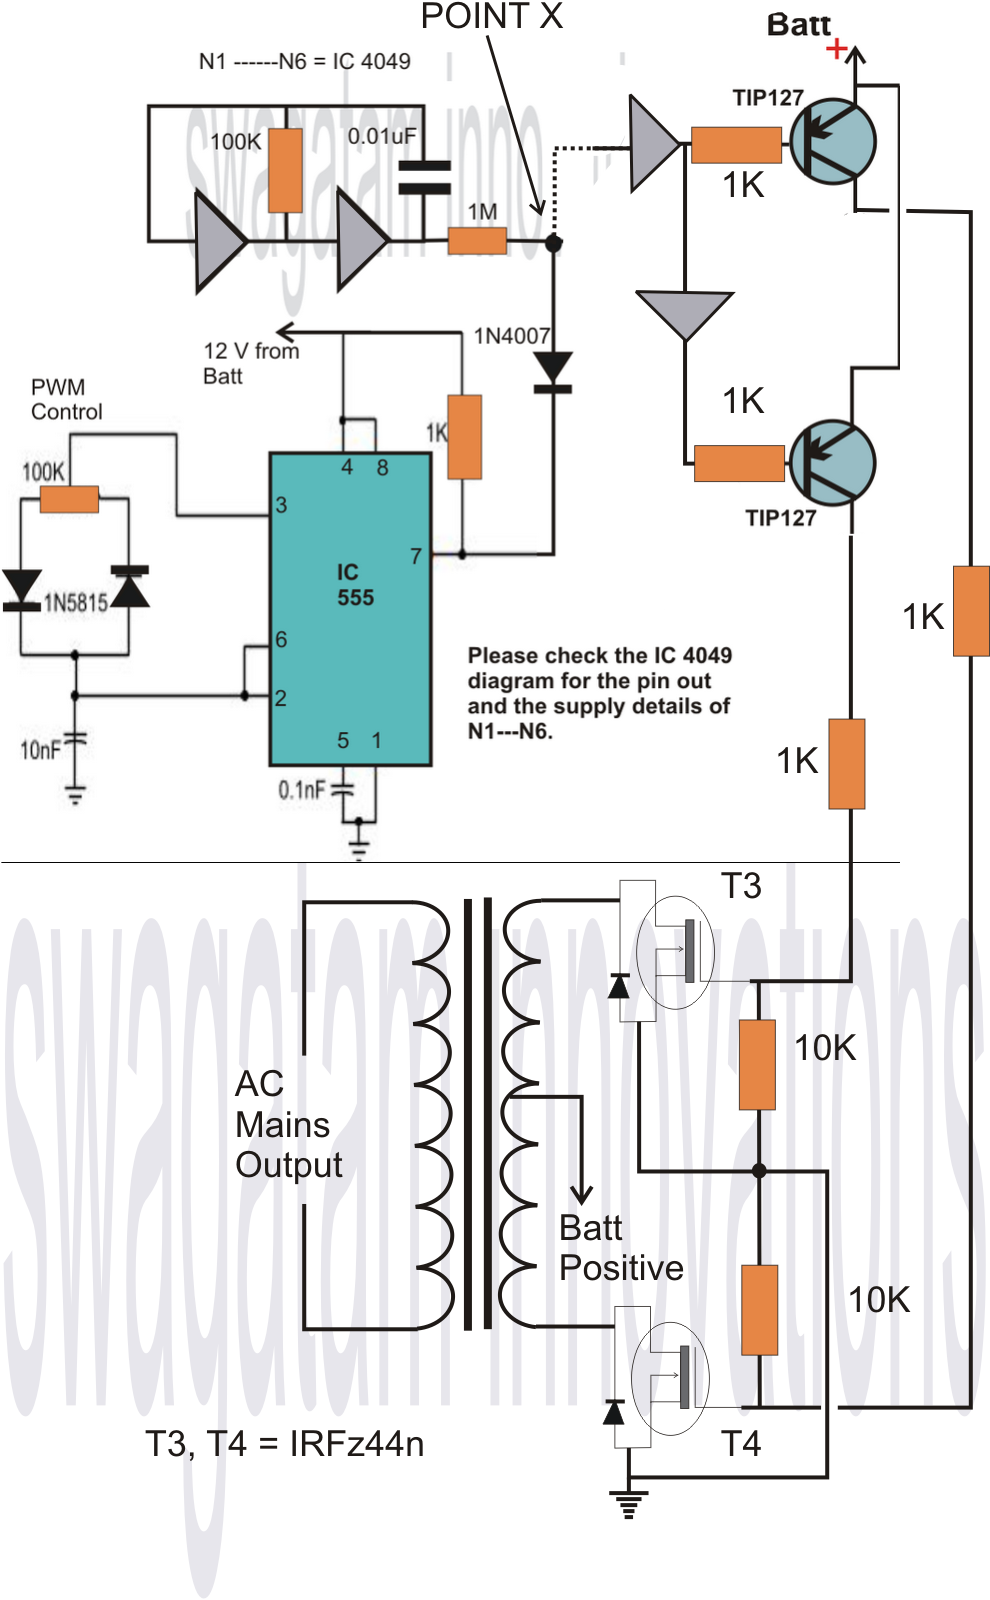 House Wiring Diagram With Inverter : Homemade va power inverter circuit